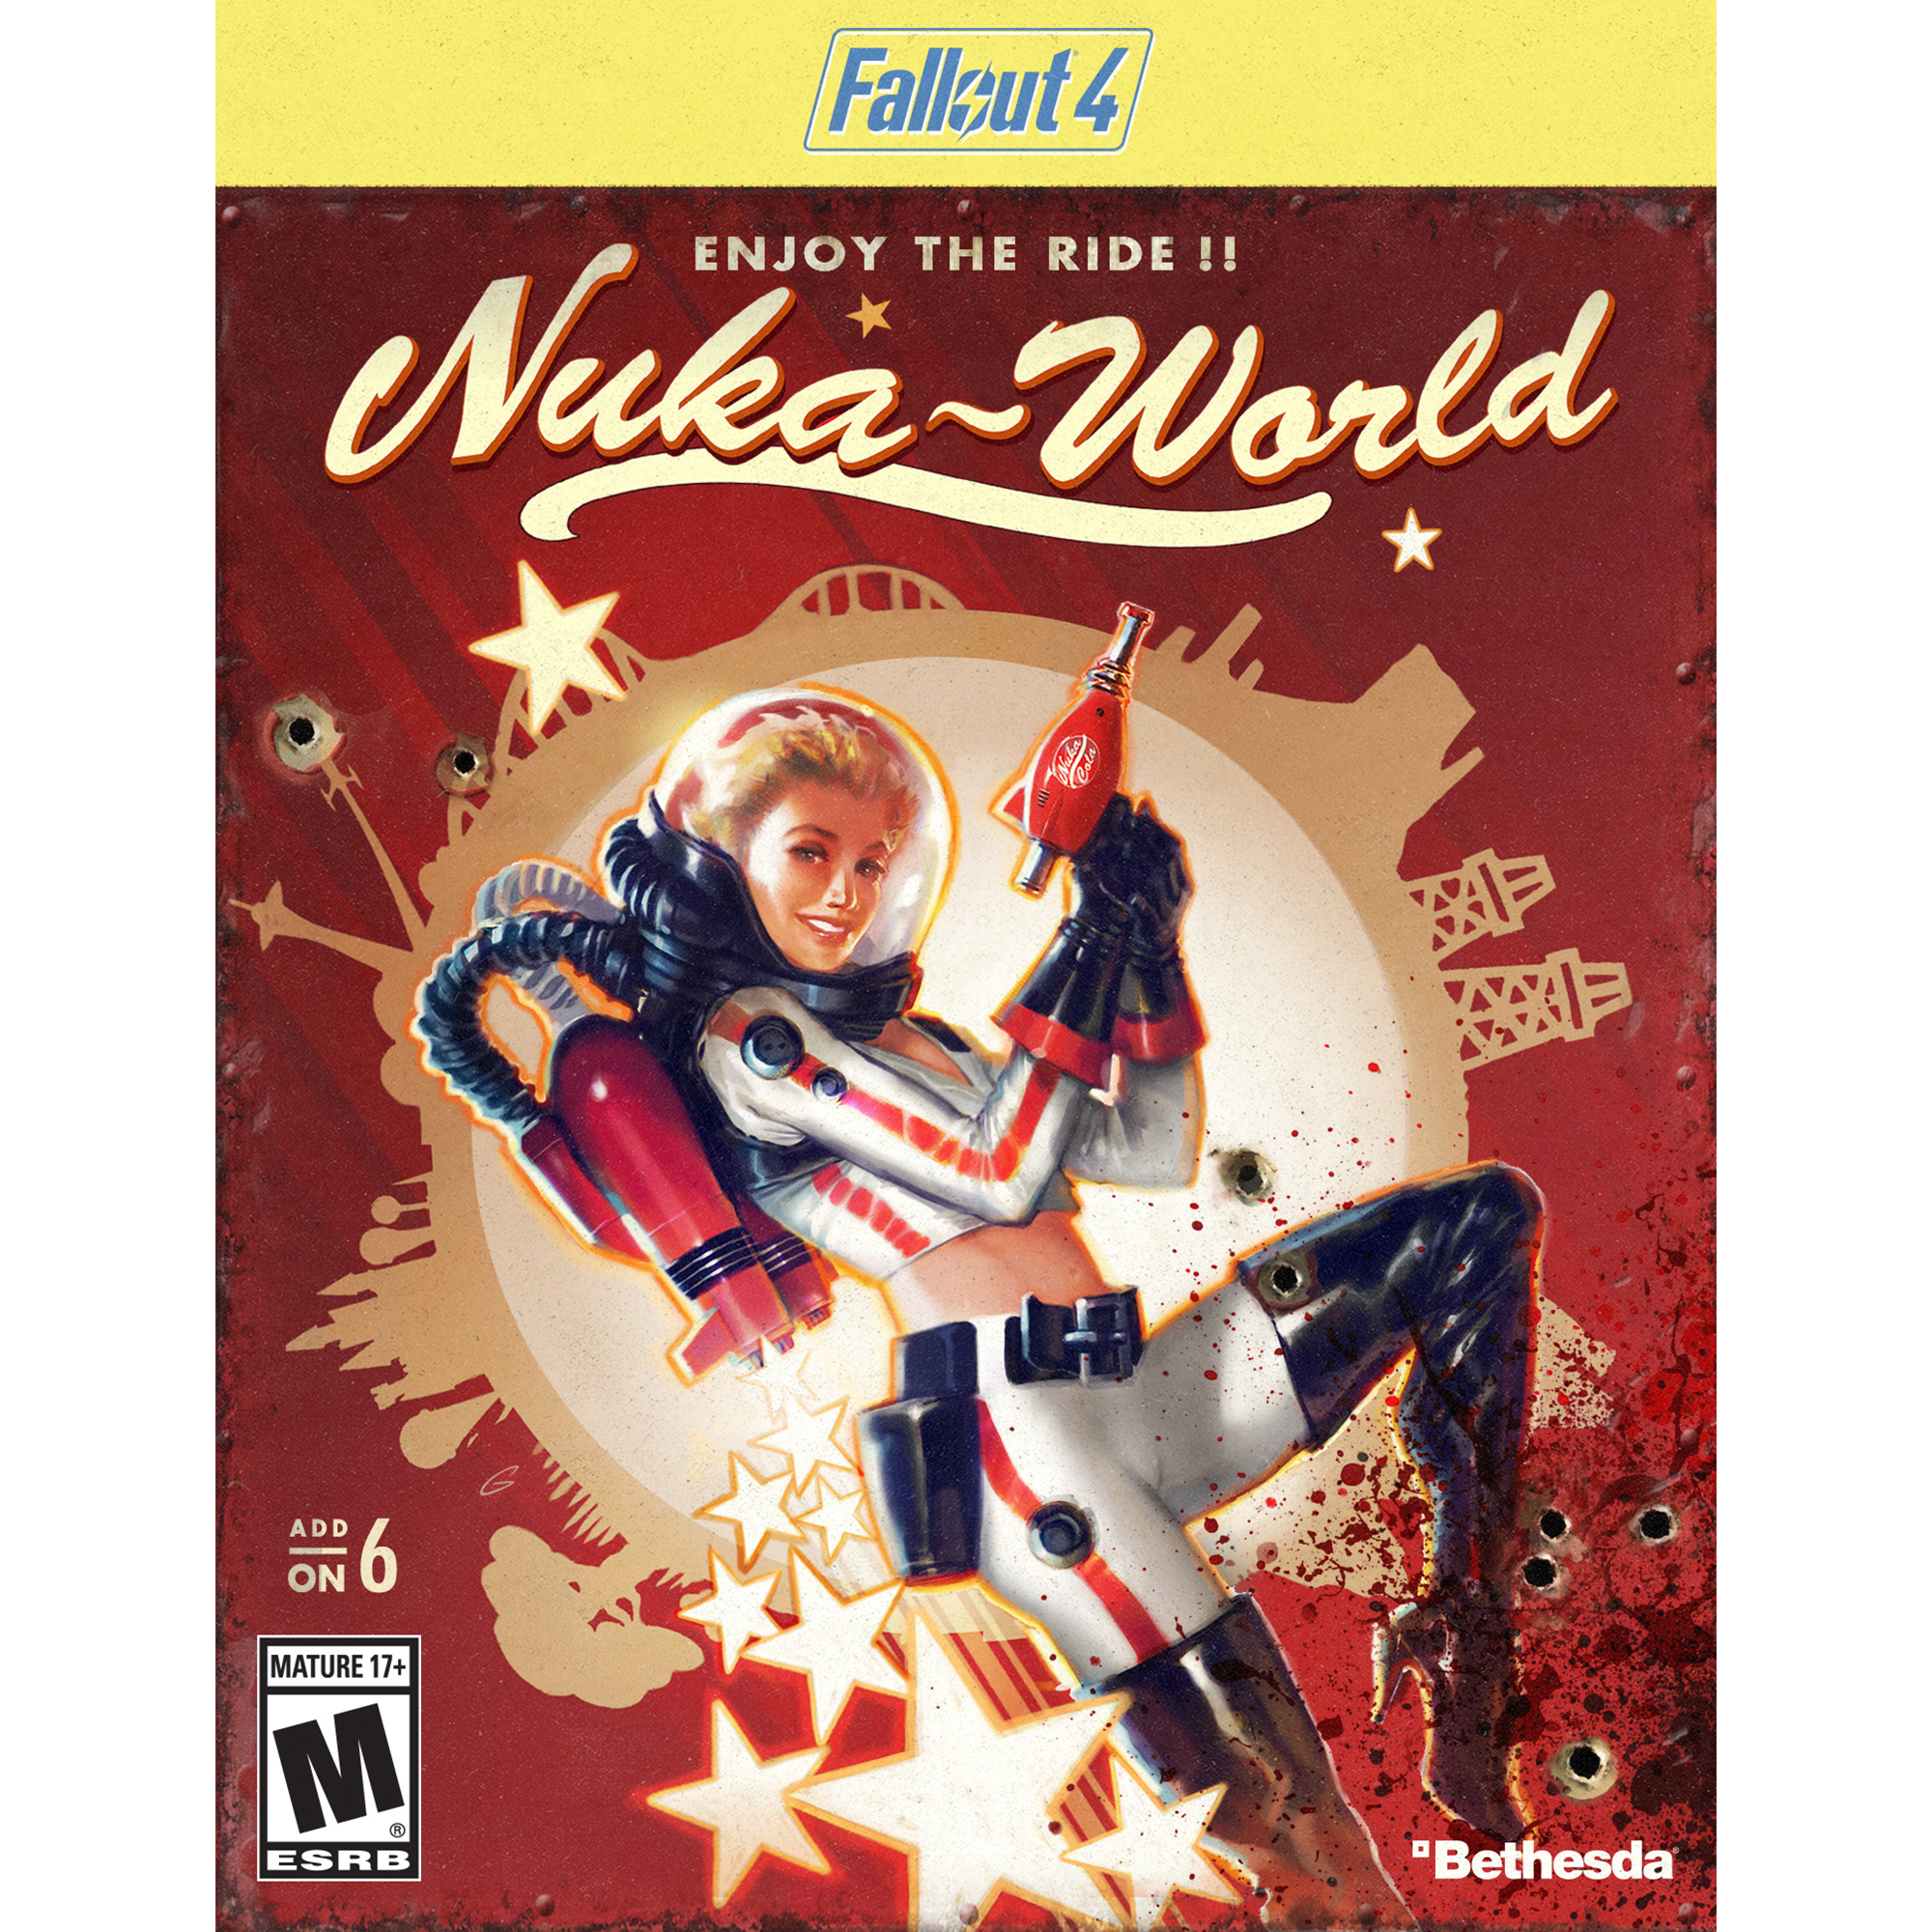 Fallout 4 - Nuka World DLC (PC)(Digital Download)